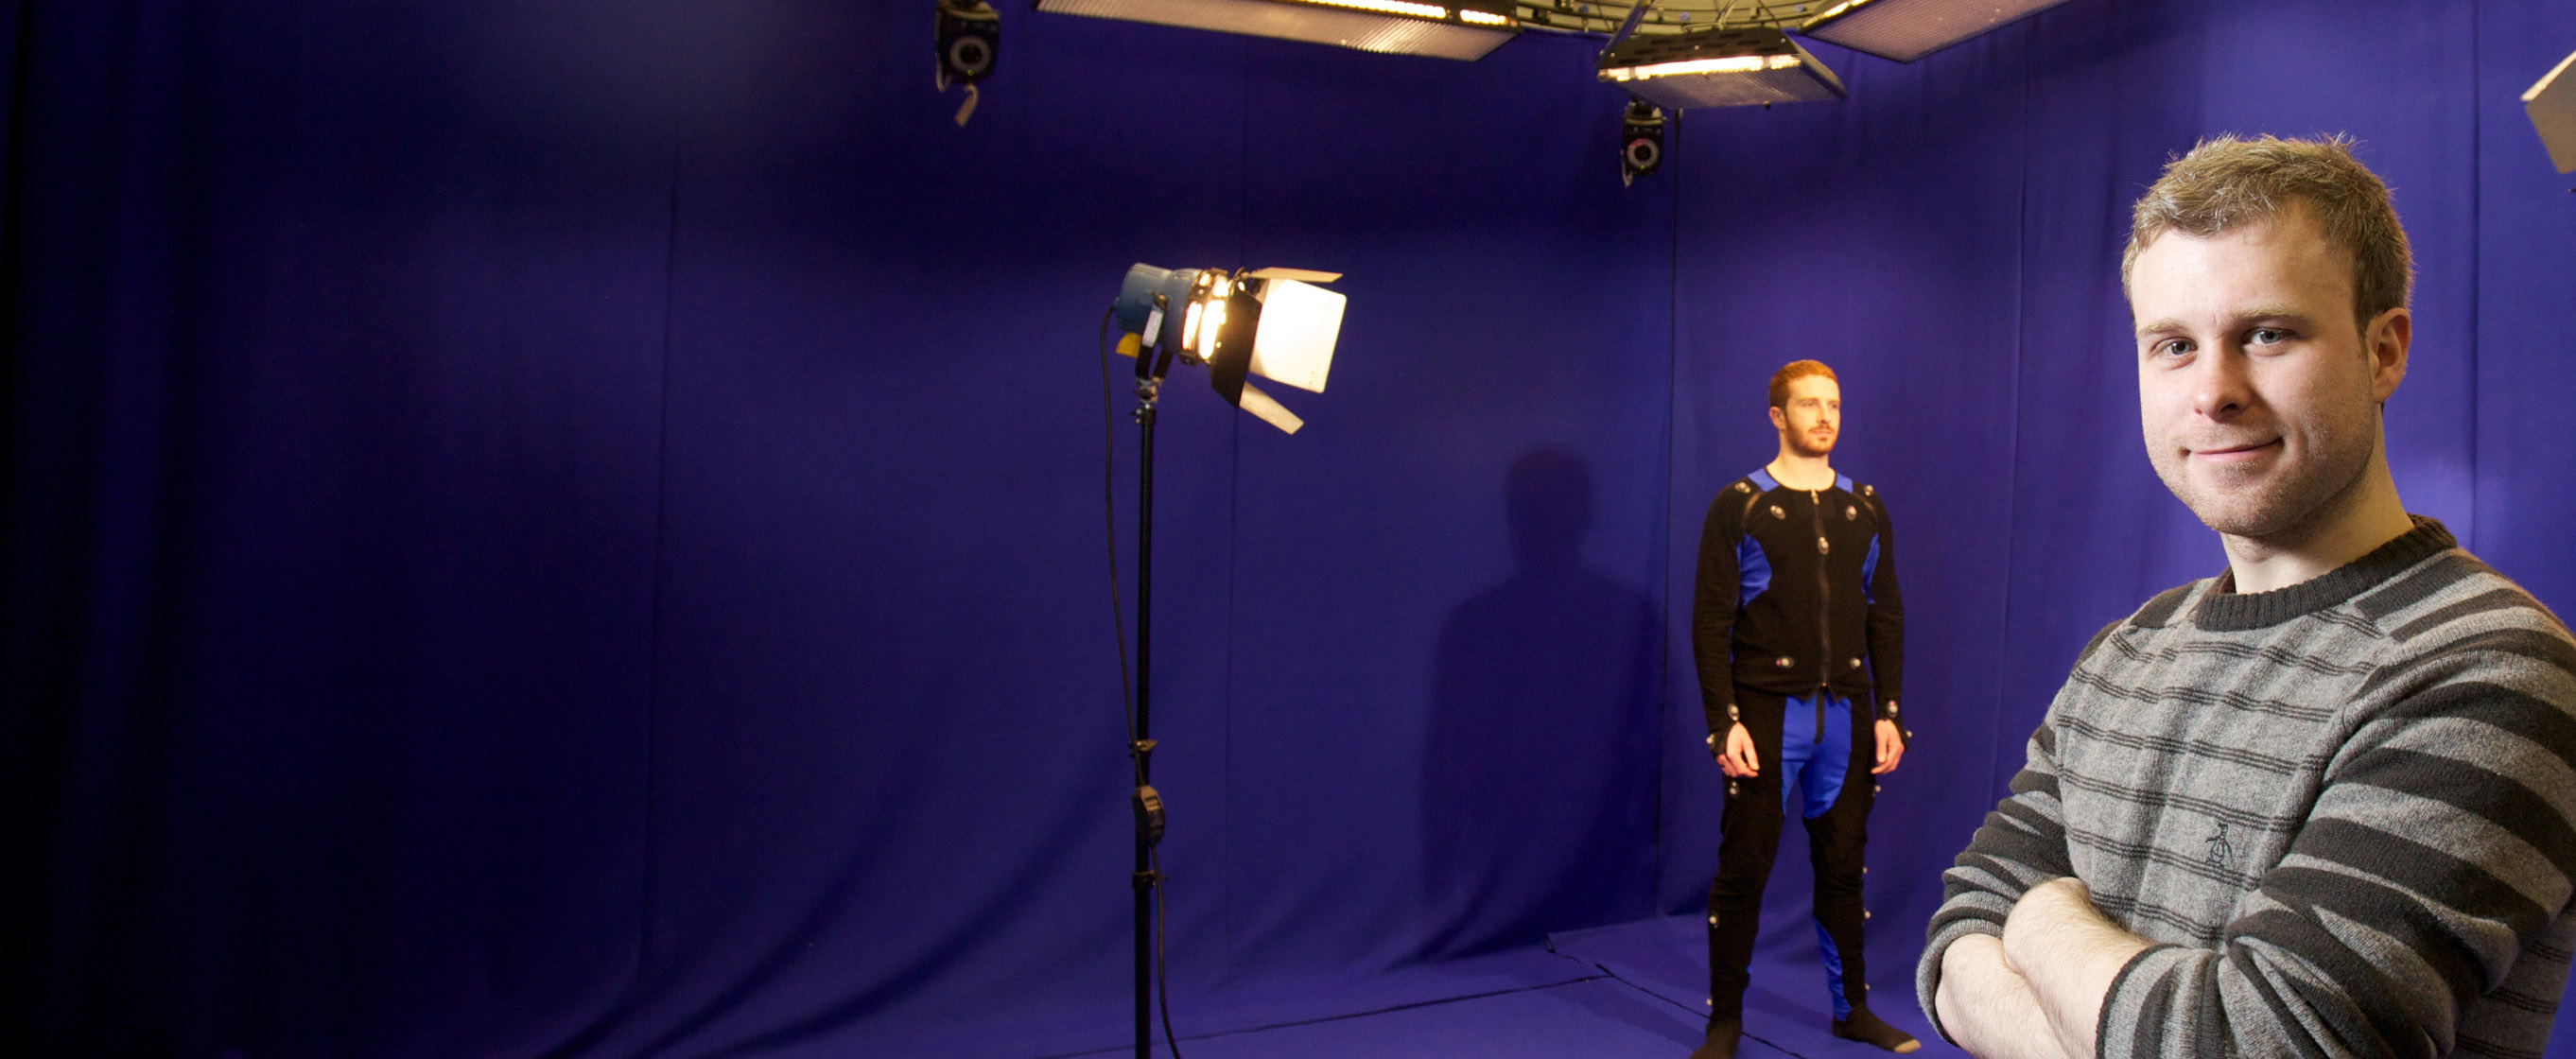 A student in the motion capture studio